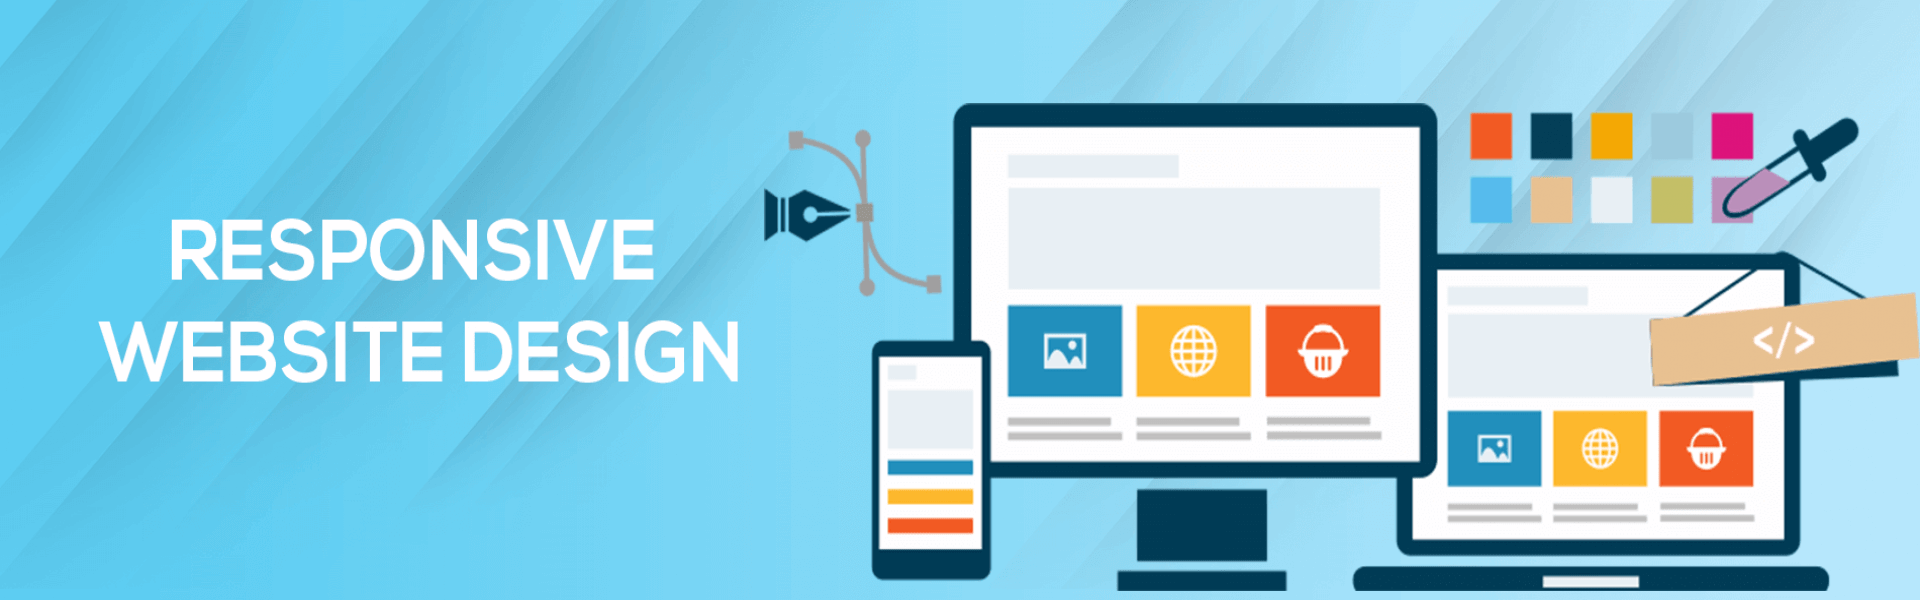 Responsive Web Design | Web Design And Development | Web Design Company